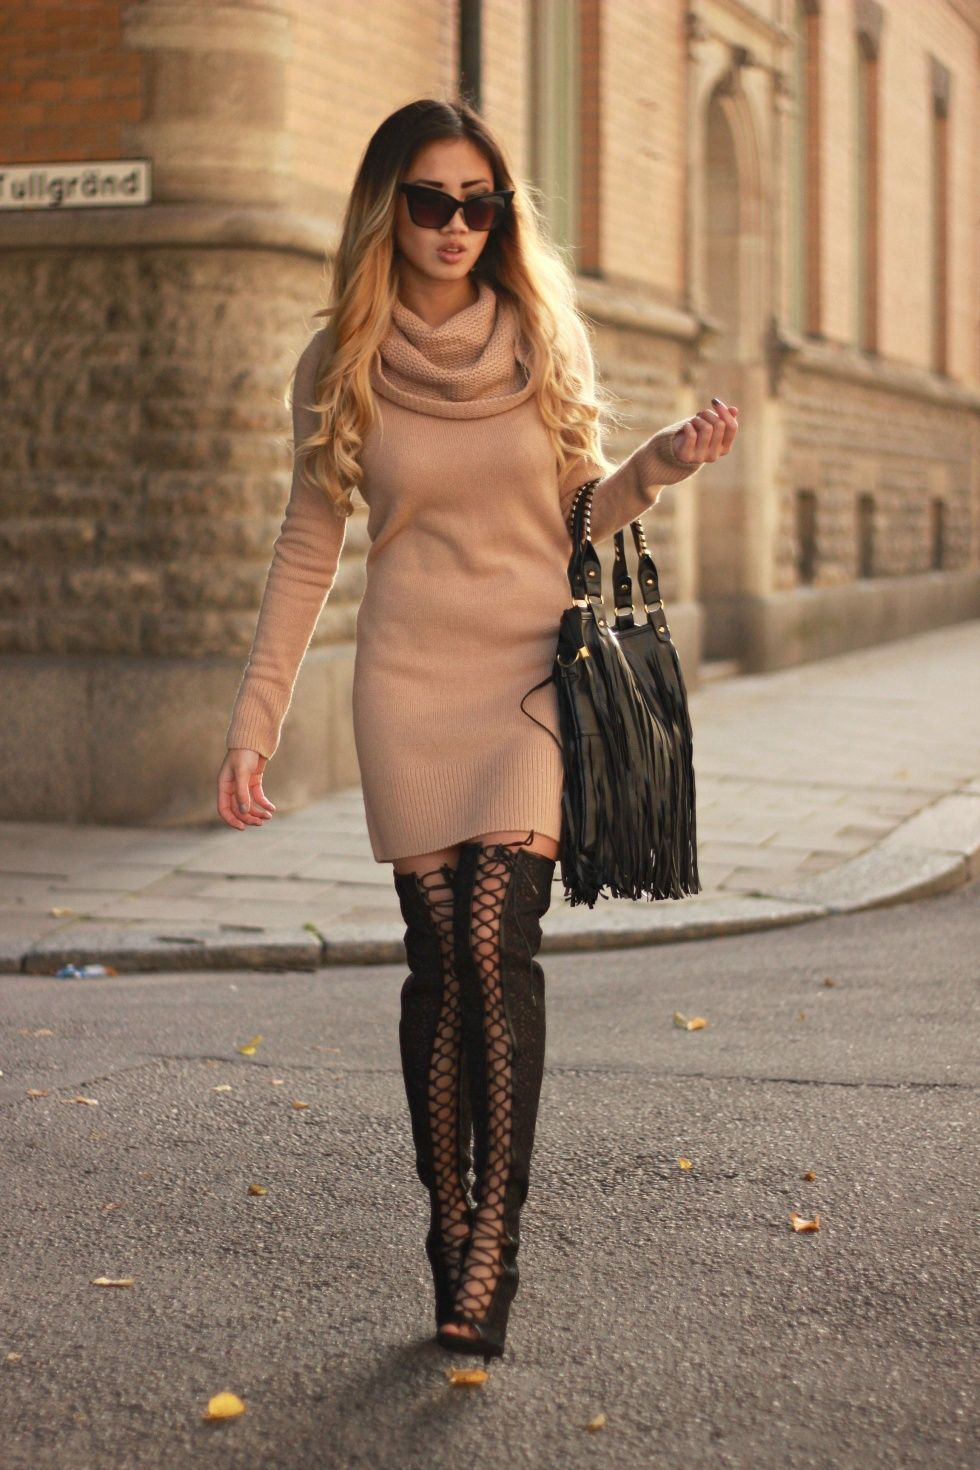 0b75c7b92aade Lace up over the knee boots / Thigh high boots outfit // street style /  fall // Fringed bag // Knitted turtleneck dress